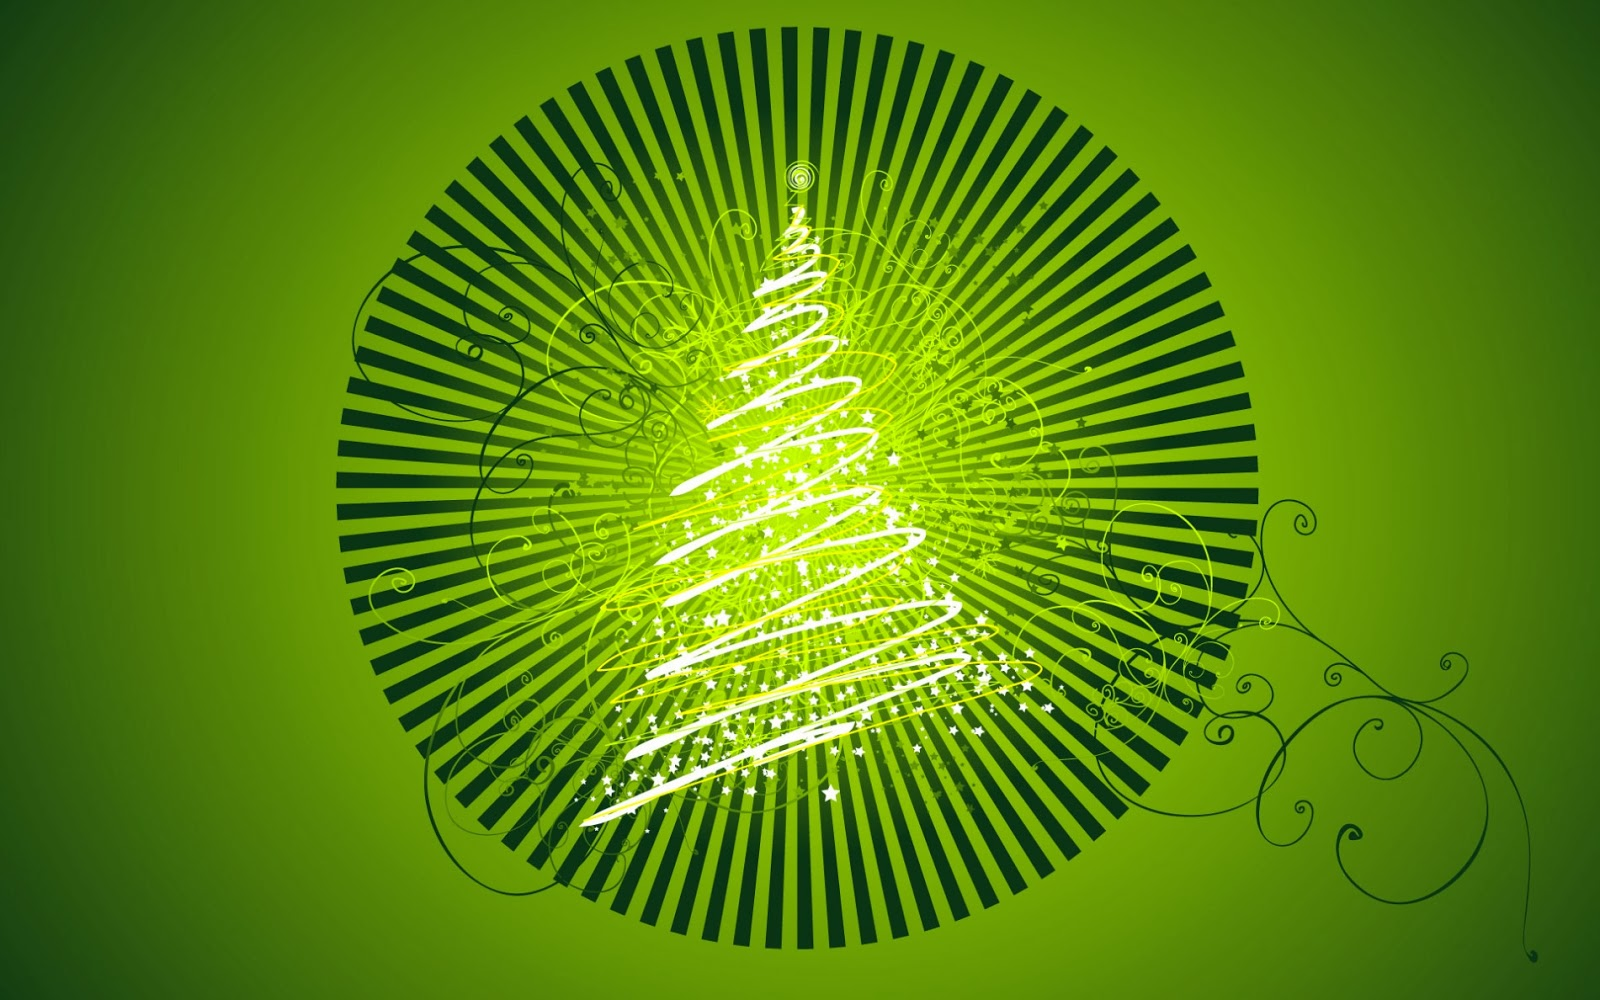 Happy Merry Christmas 2014 Green Tree Wallpaper